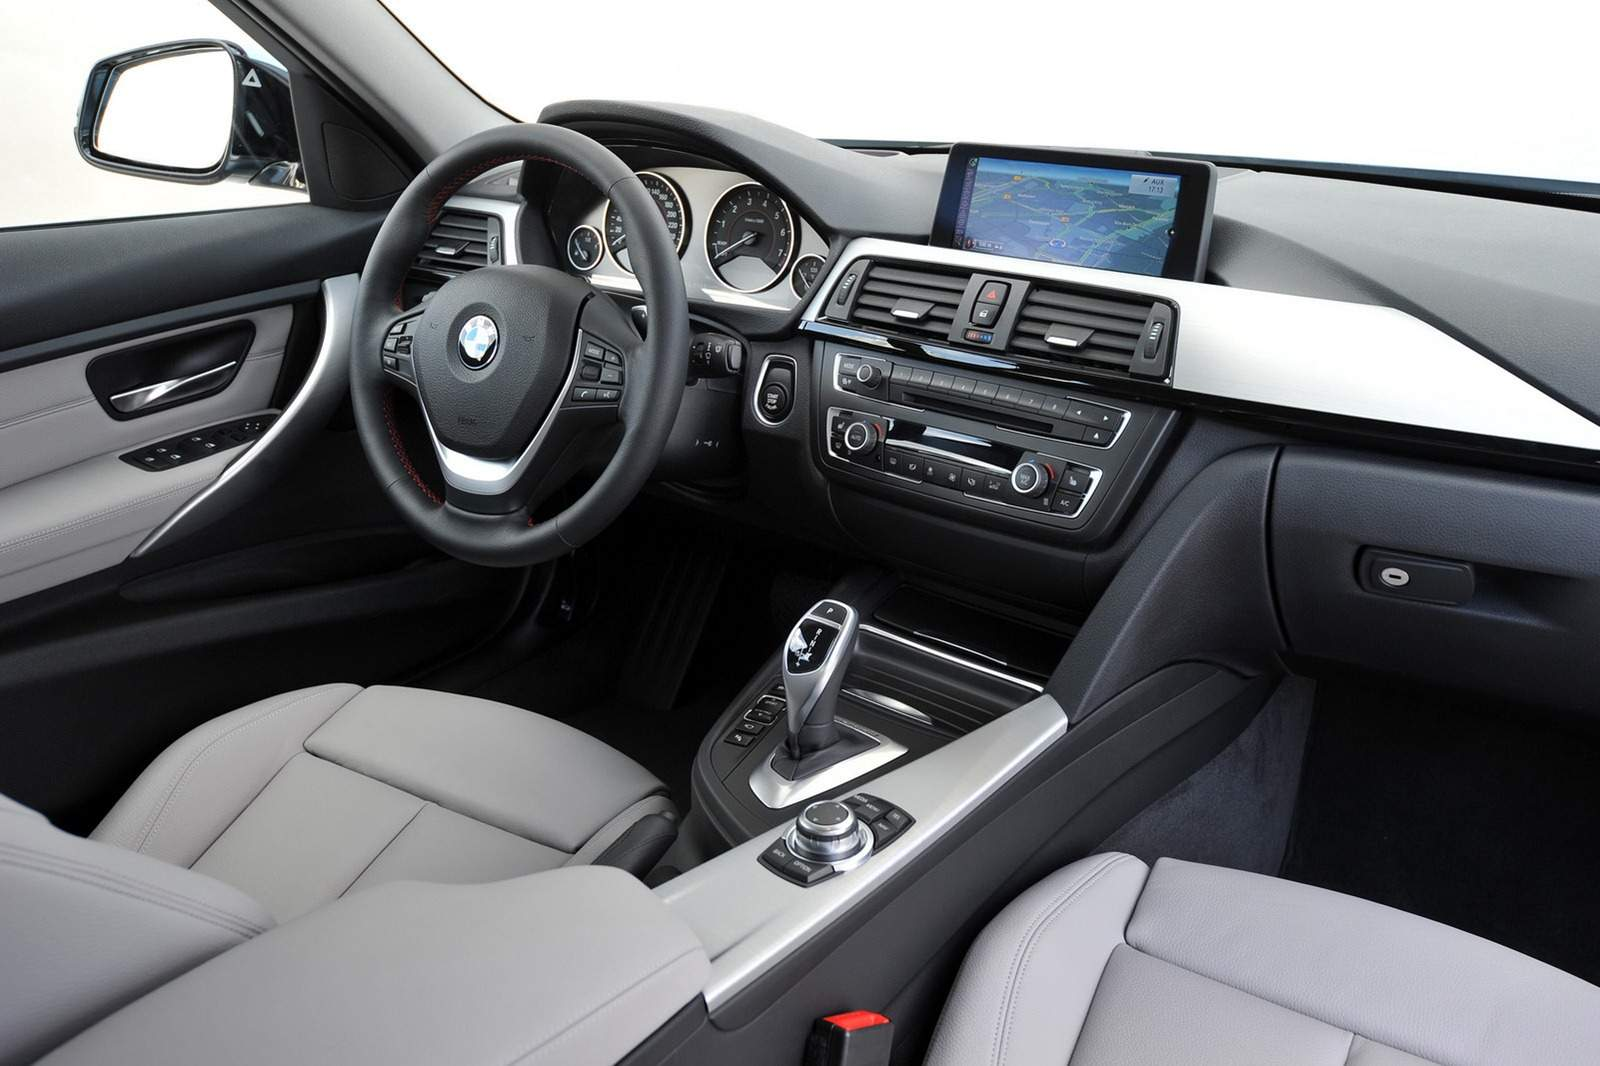 BMW F30 3 series interior